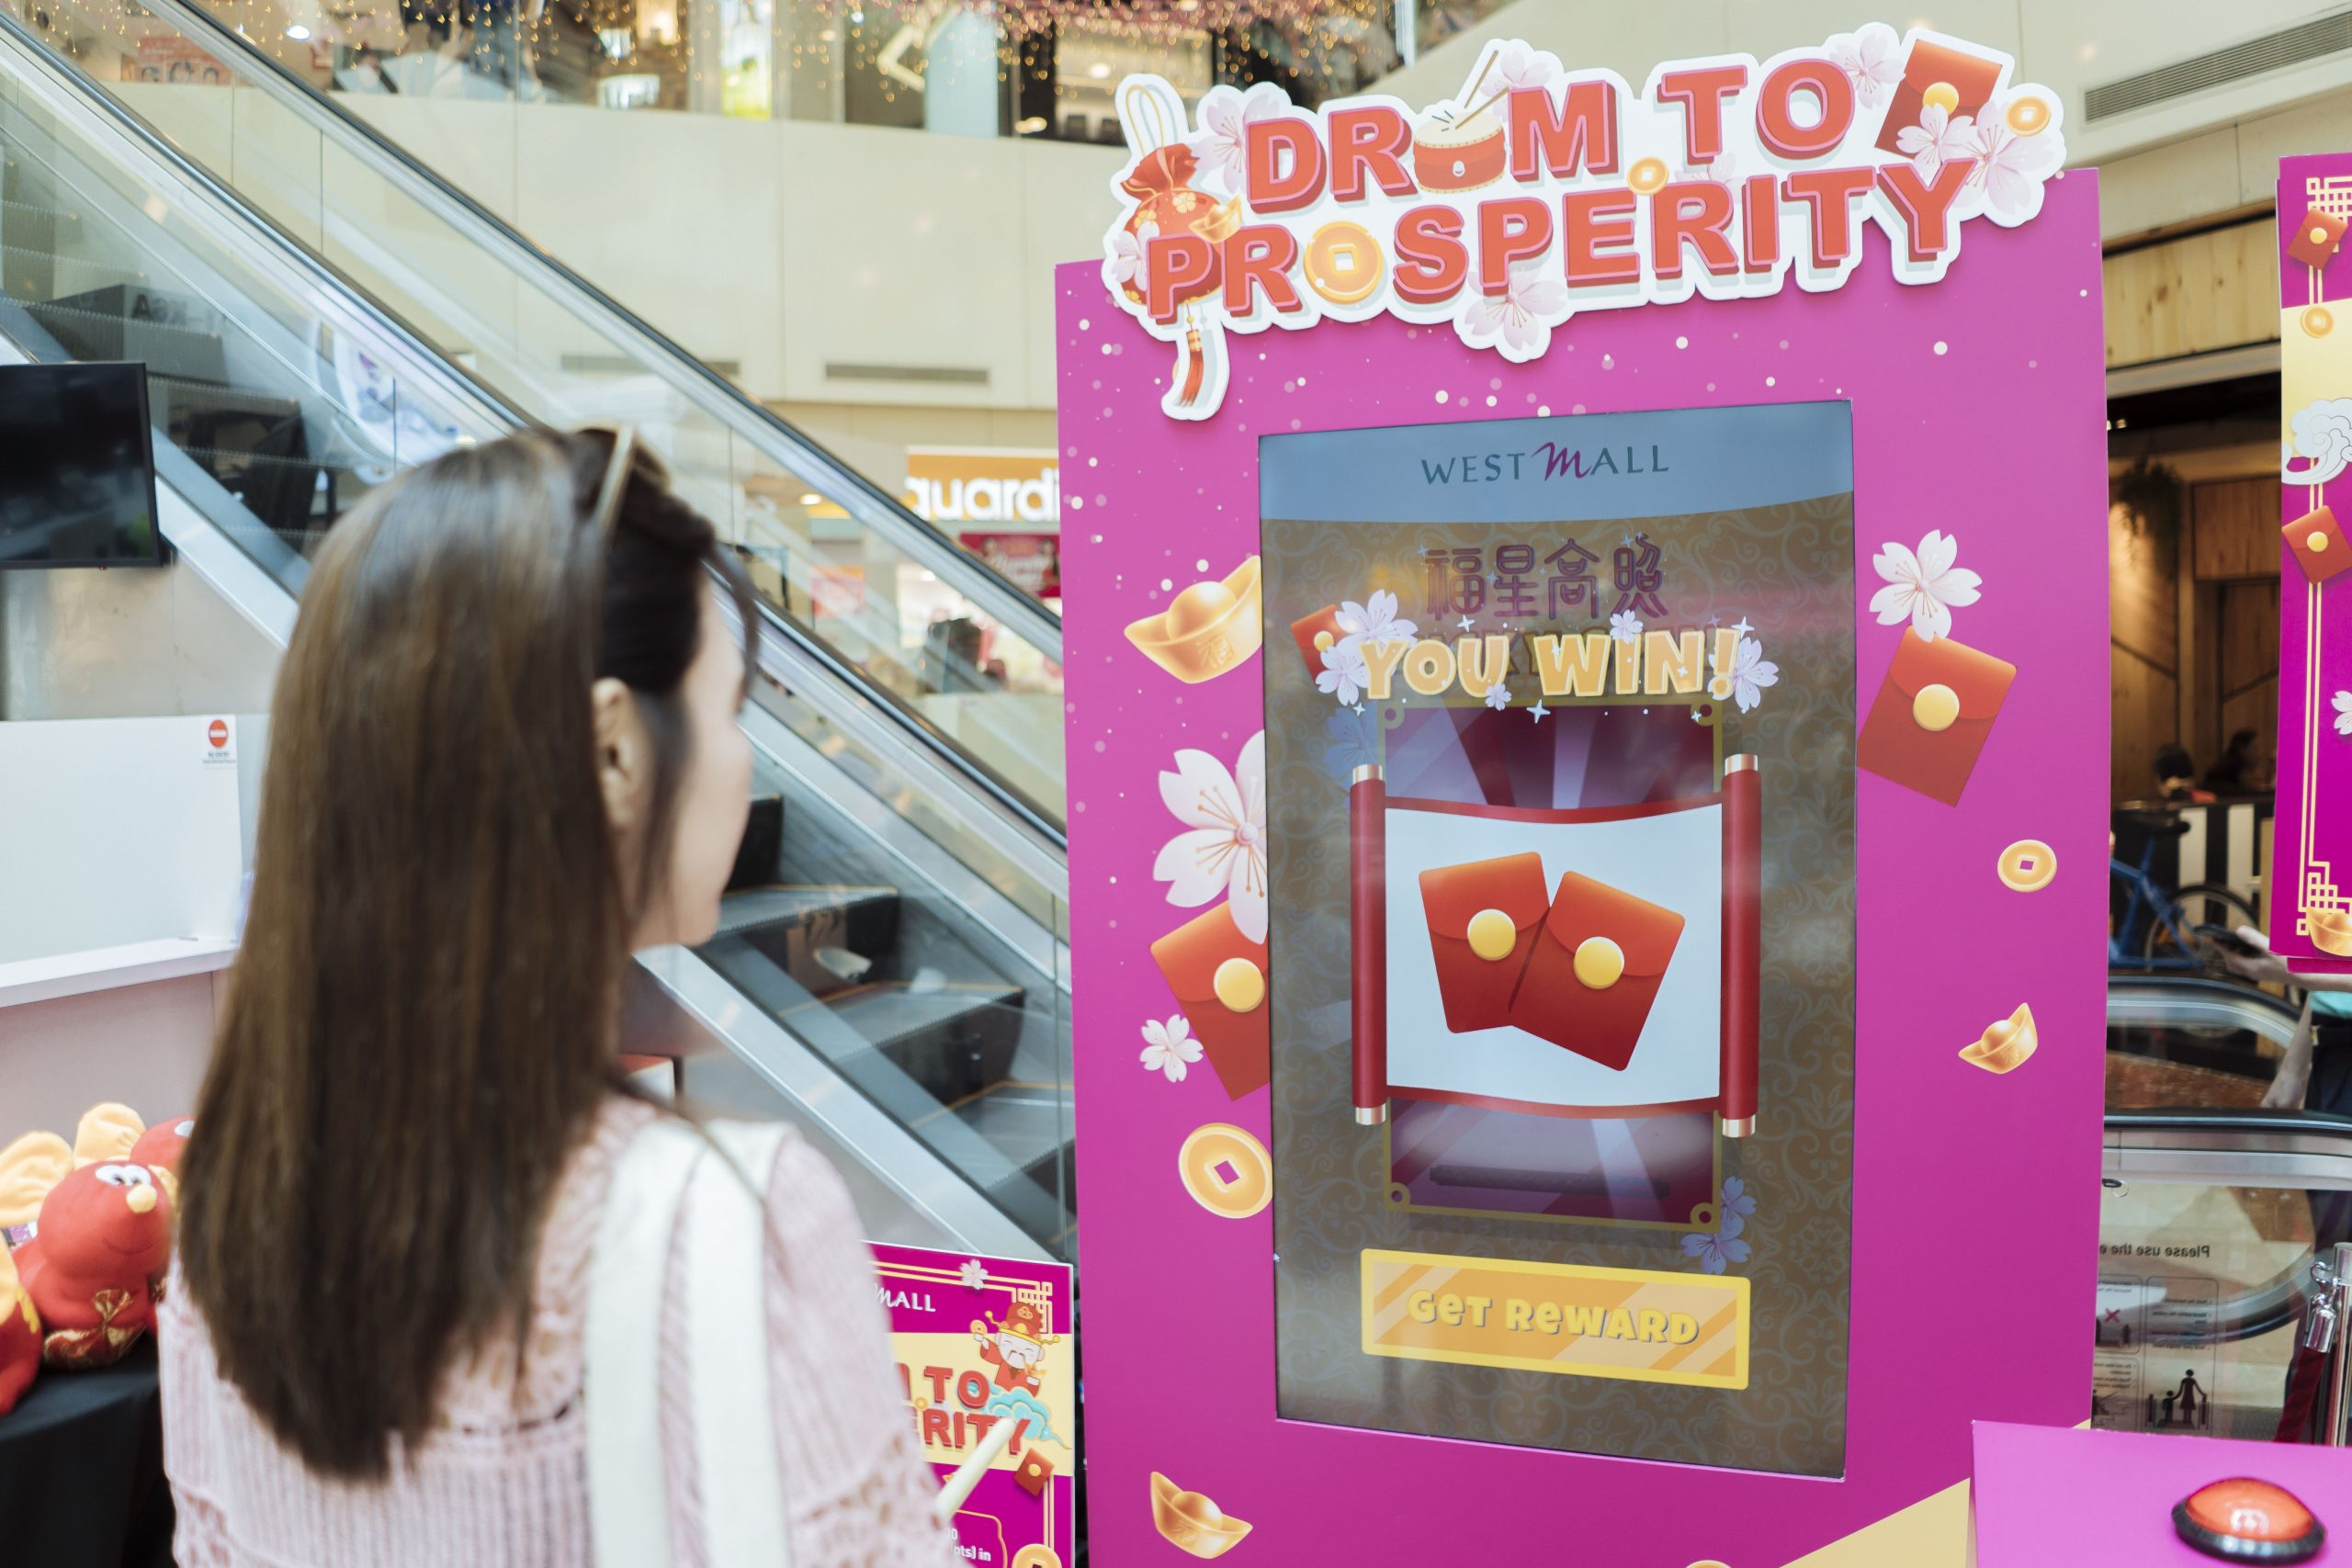 A girl won a prize after playing the west mall drum to prosperity kiosk game